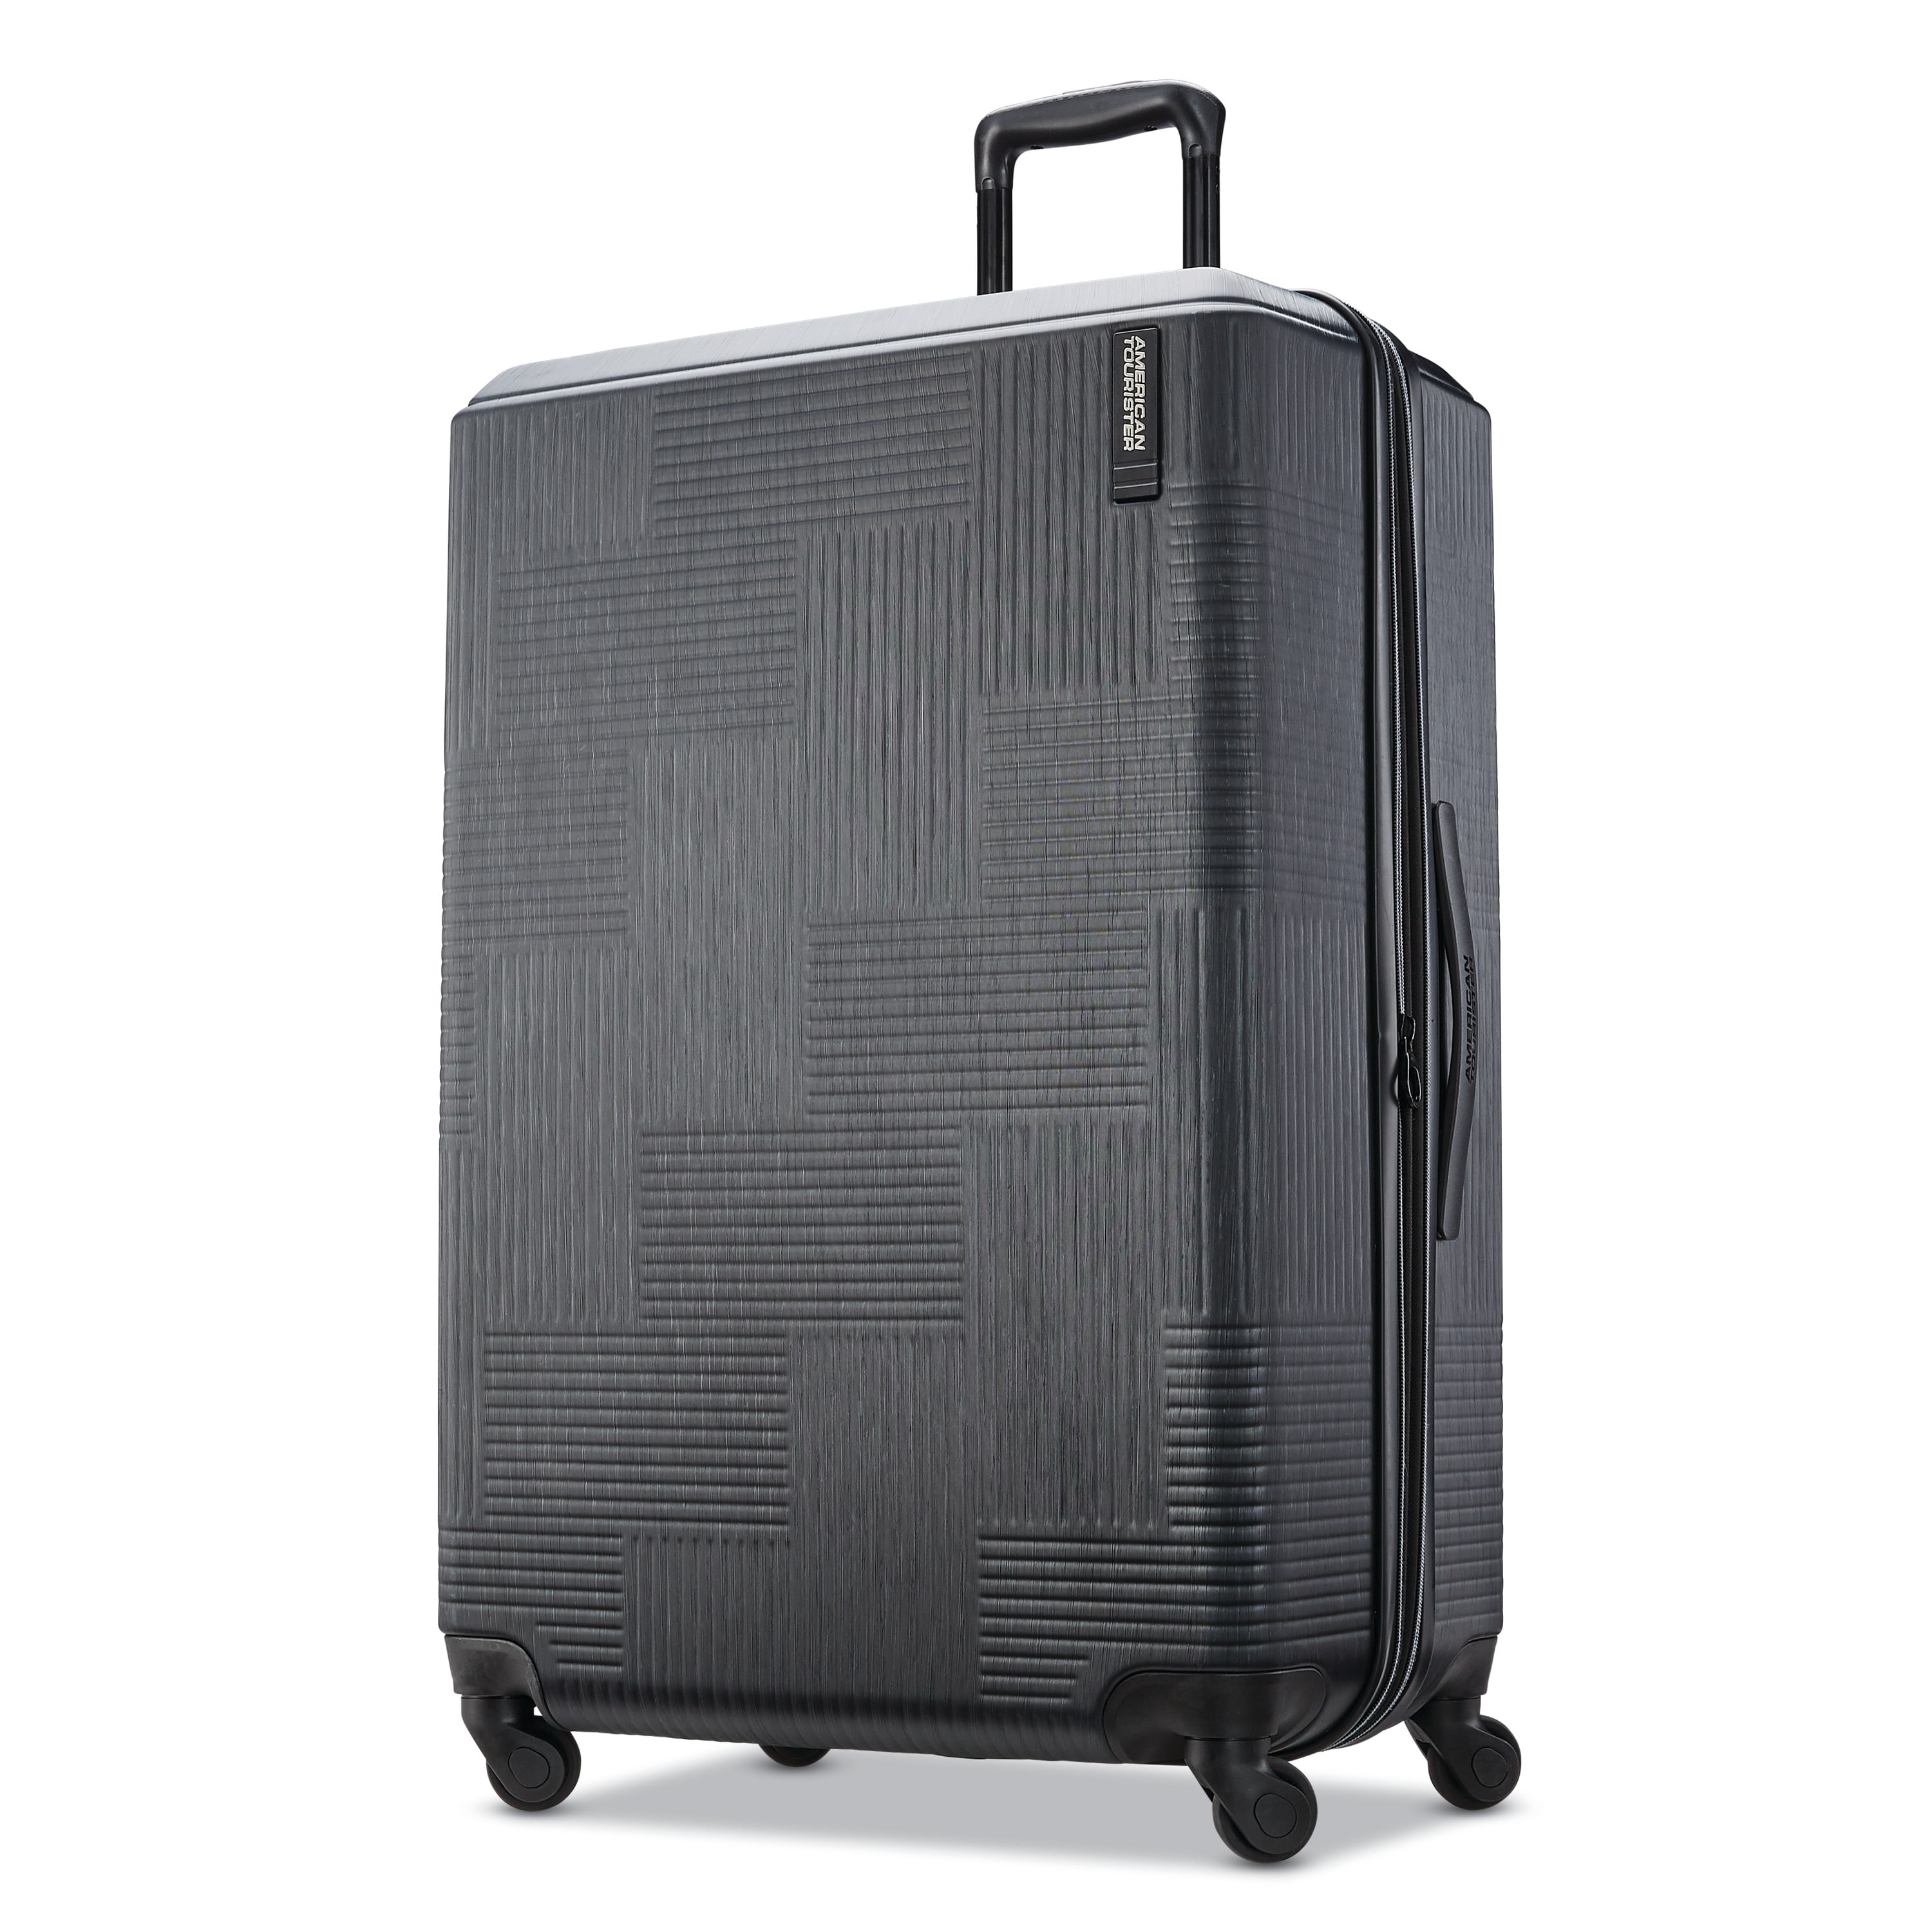 American Tourister Stratum XLT 28-inch Hardside Spinner, Checked Luggage, One Piece